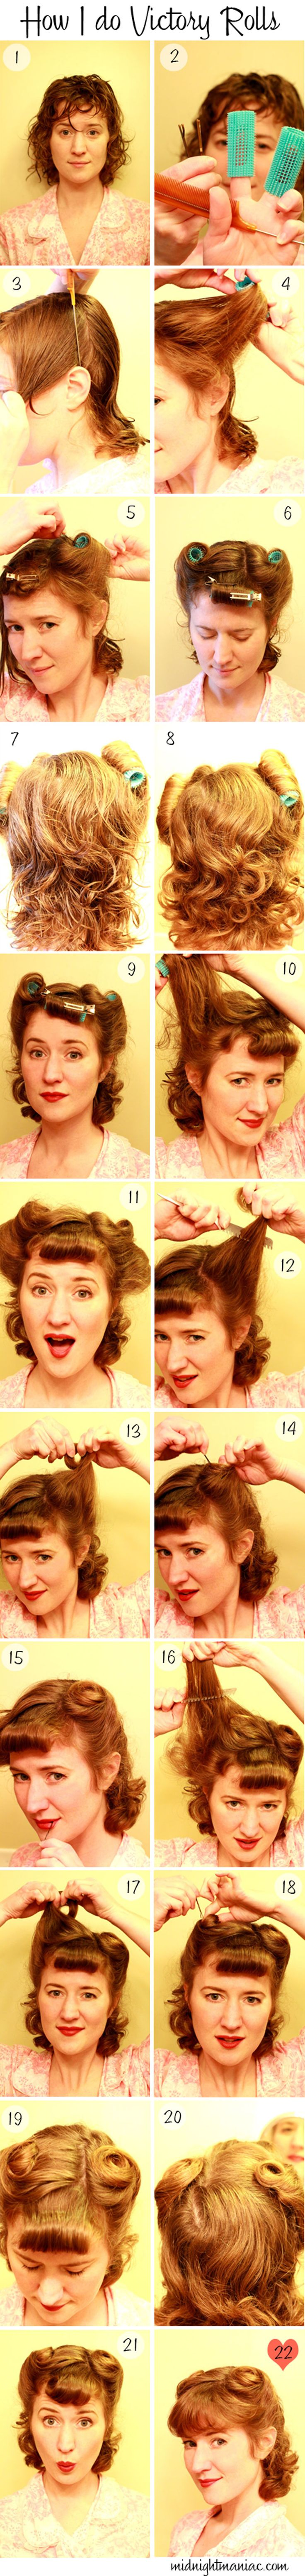 My hairs a little too thick to do it like this, but I thought it would be good for other people. Victory rolls are so beautiful.